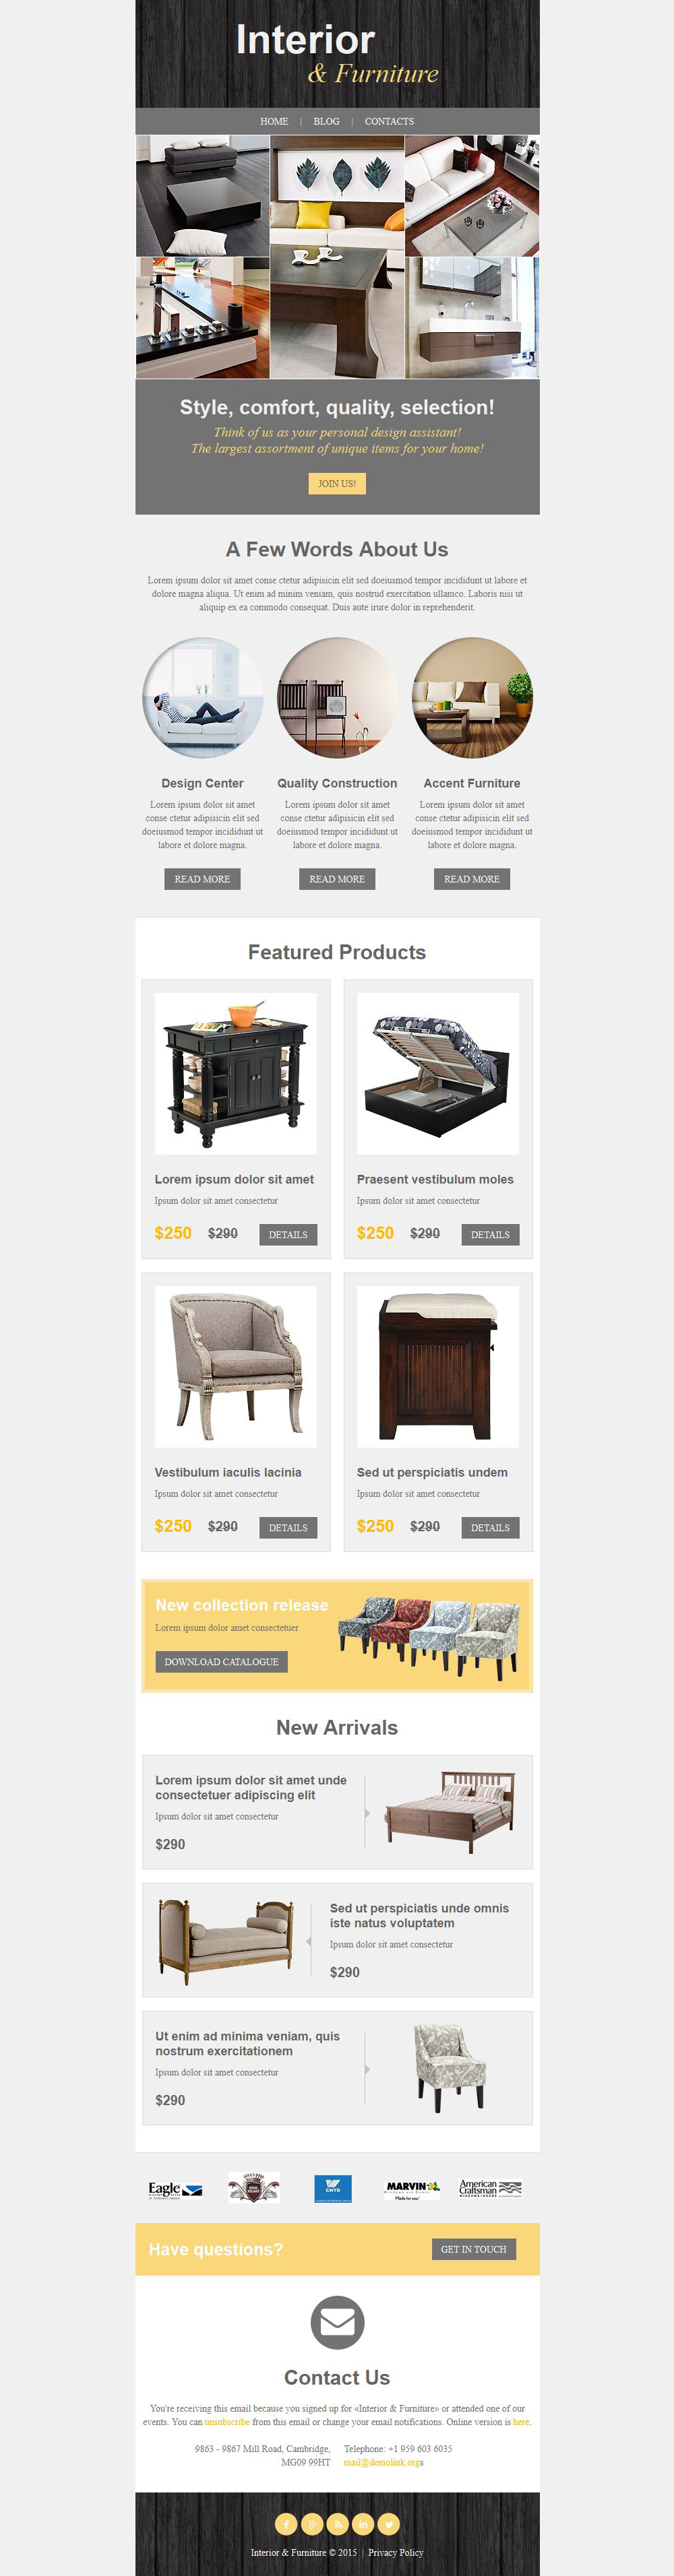 Interior & Furniture Responsive Newsletter Template